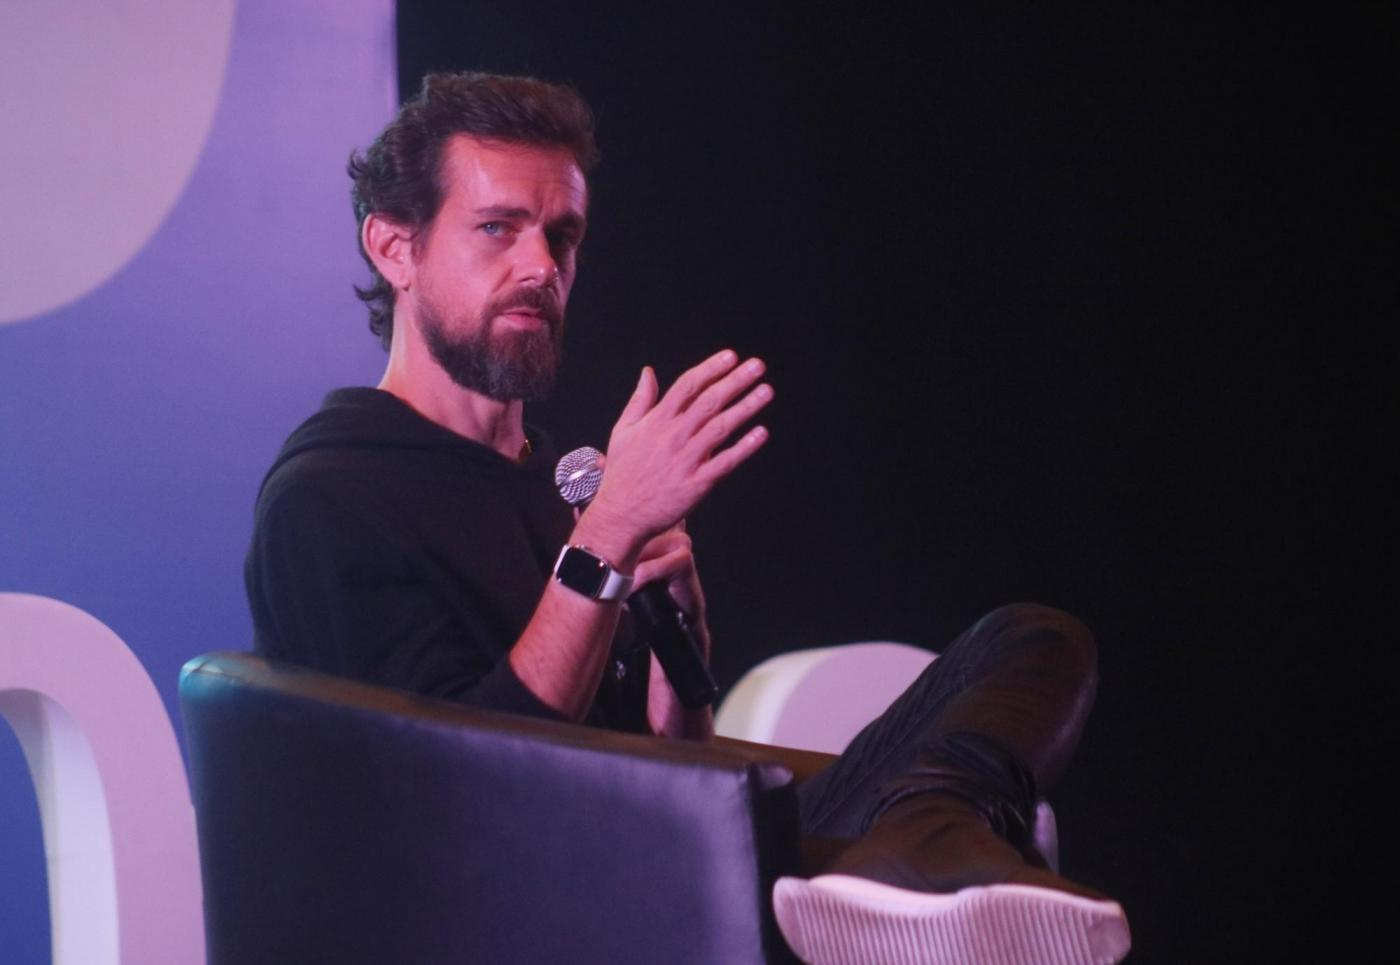 """New Delhi: Twitter Co-founder and CEO Jack Dorsey addresses the students of IIT Delhi at the launch of a """"youth initiative"""" on Nov 12, 2018. (Photo: IANS) by ."""